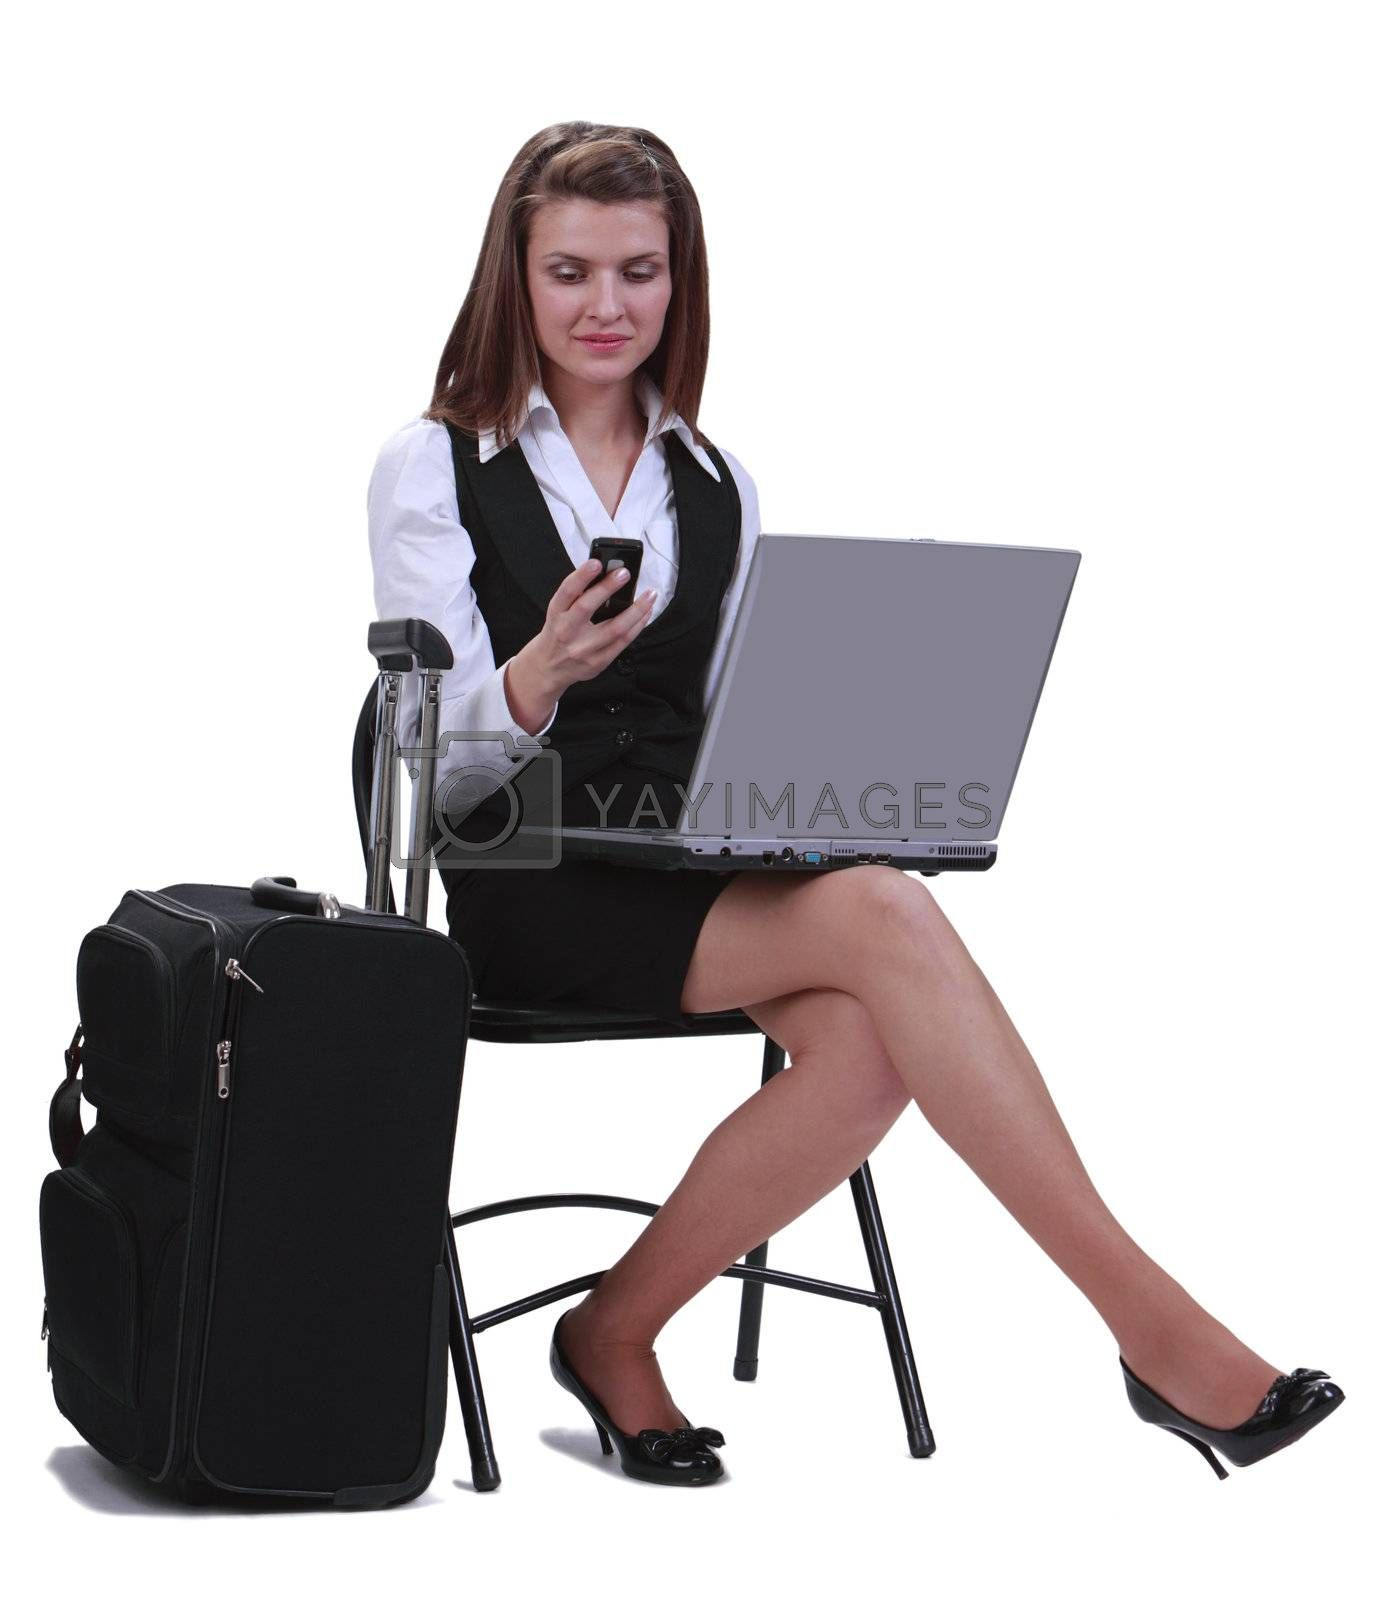 Young businesswoman reading a phone message while she is sitting with her laptop next to her suitcase,isolated against a white background.